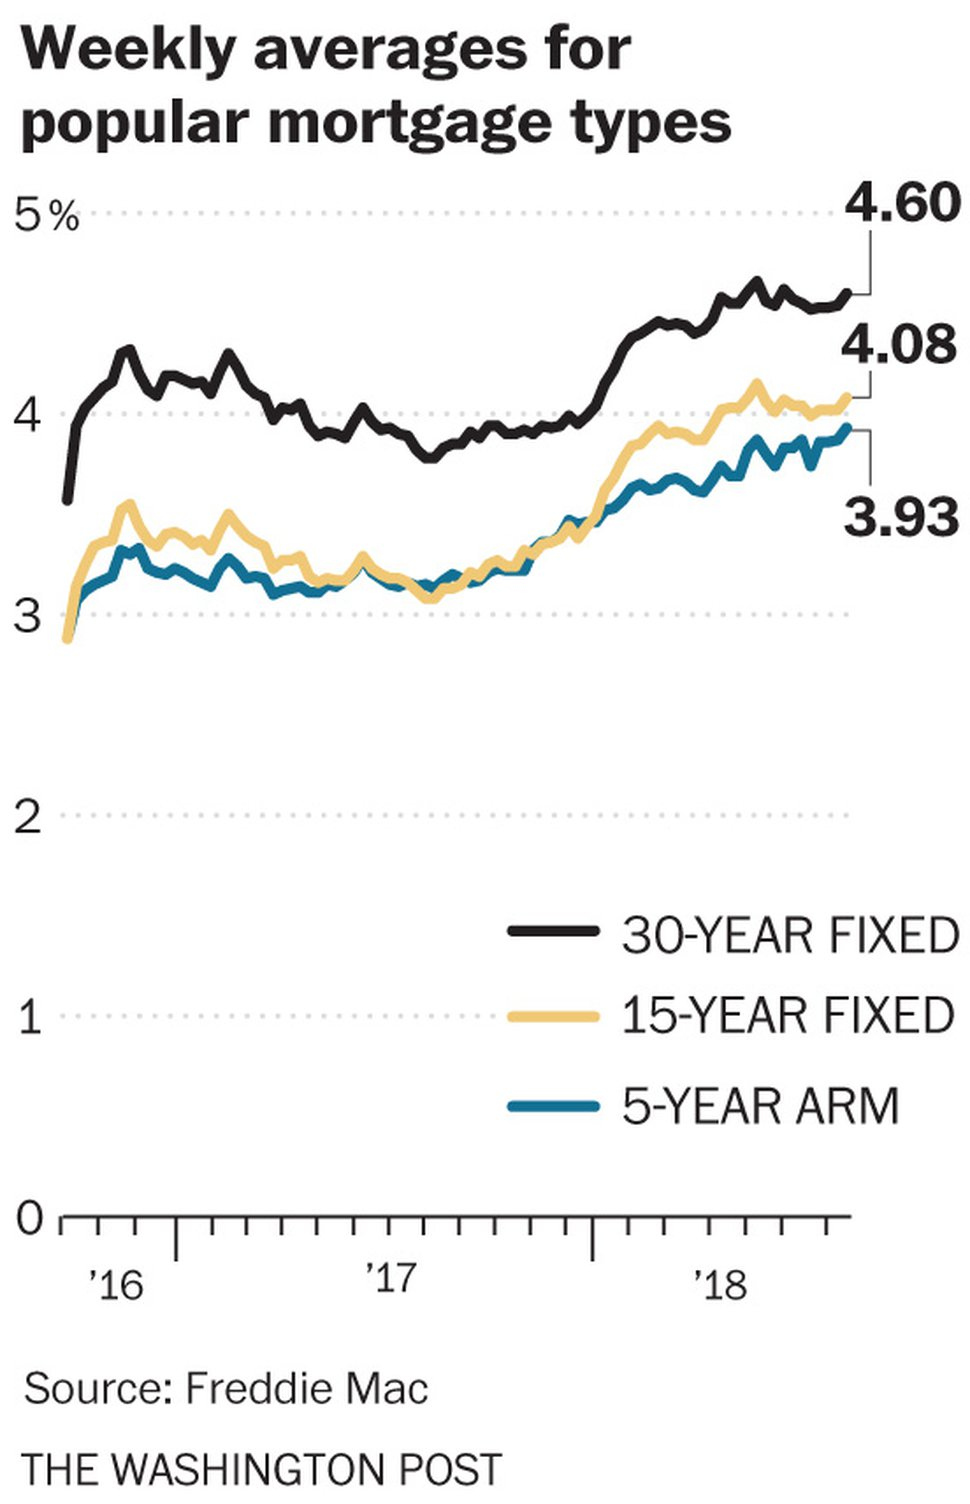 (The Washington Post) Weekly averages for 30-year and 15-year fixed-rate mortgage rates, in percent.